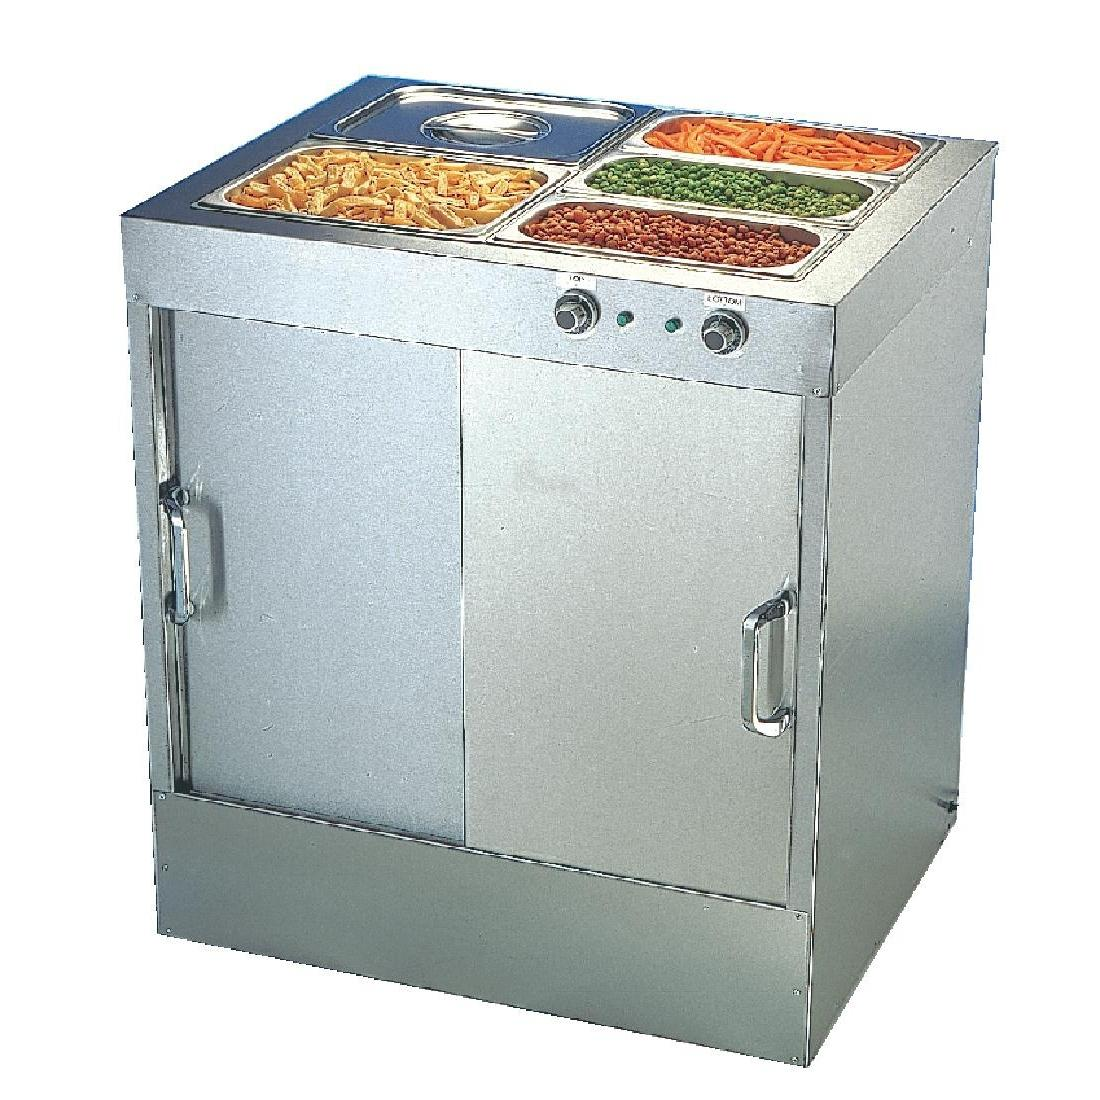 G045 - Buffalo Hot Cupboard with Bain Marie Top 30 plates - G045